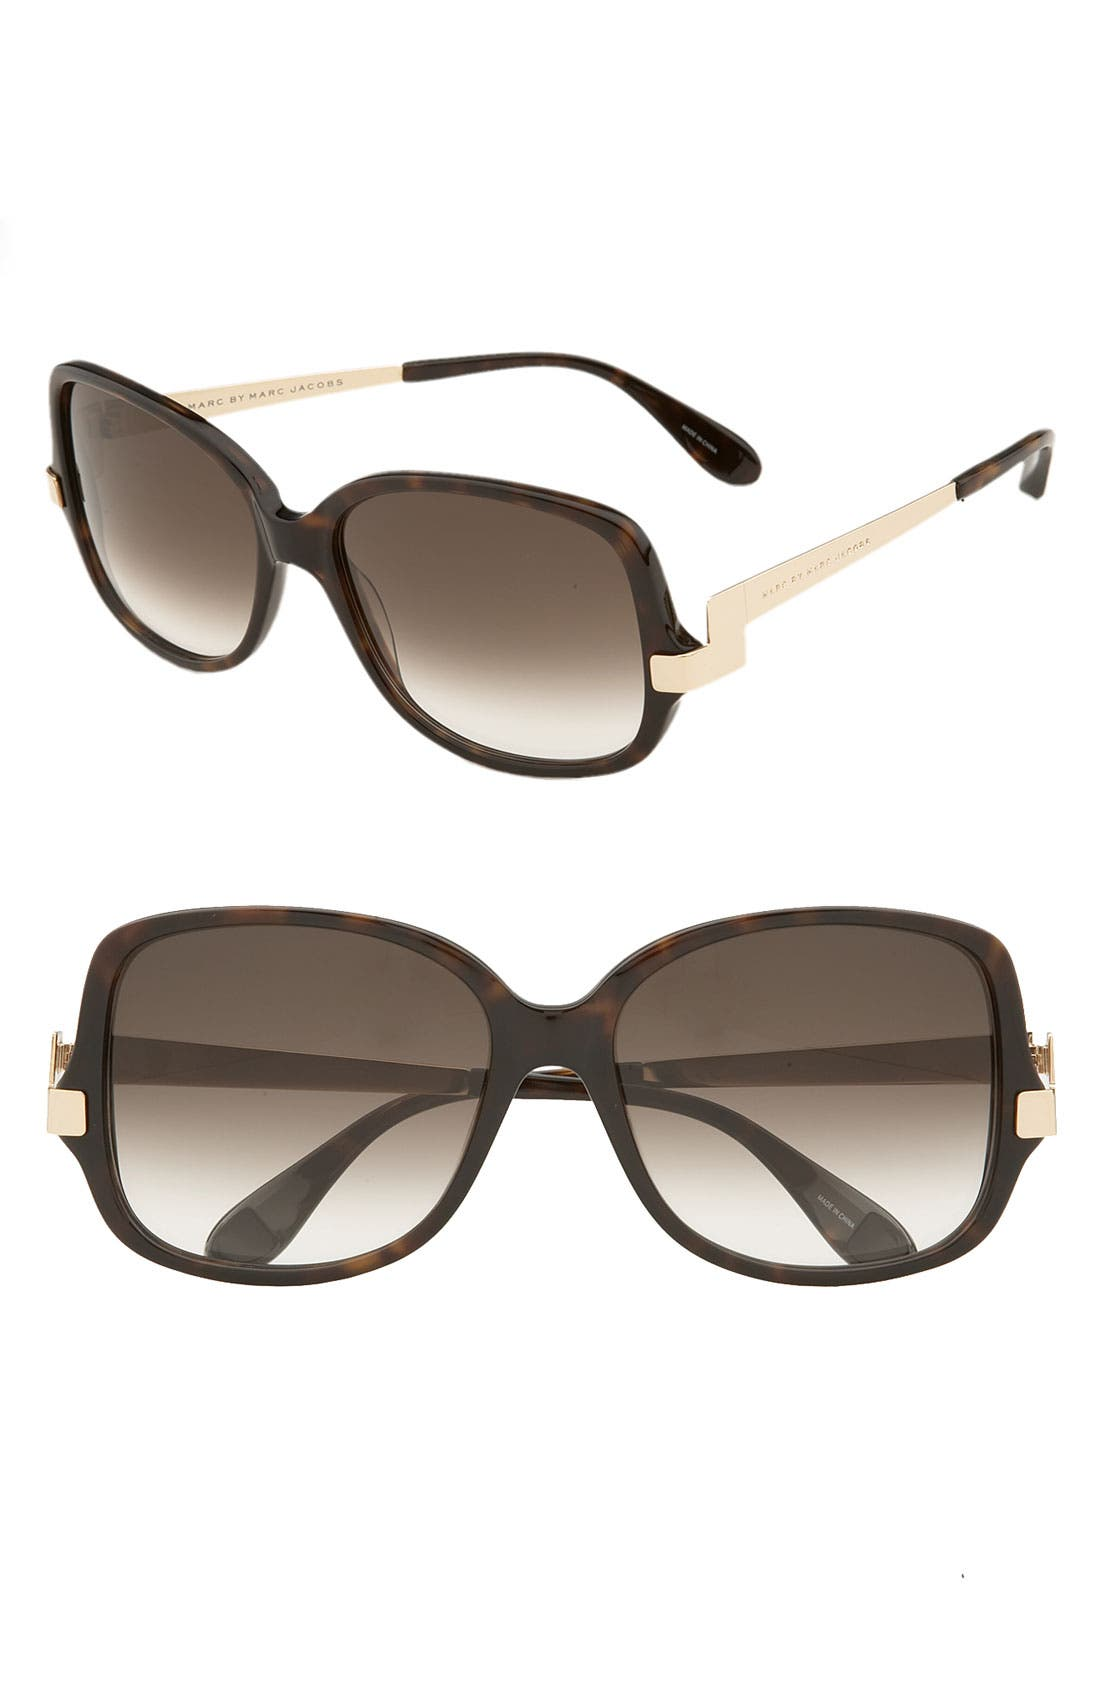 Alternate Image 1 Selected - MARC BY MARC JACOBS 56mm Oversized Square Sunglasses with Retro Temples